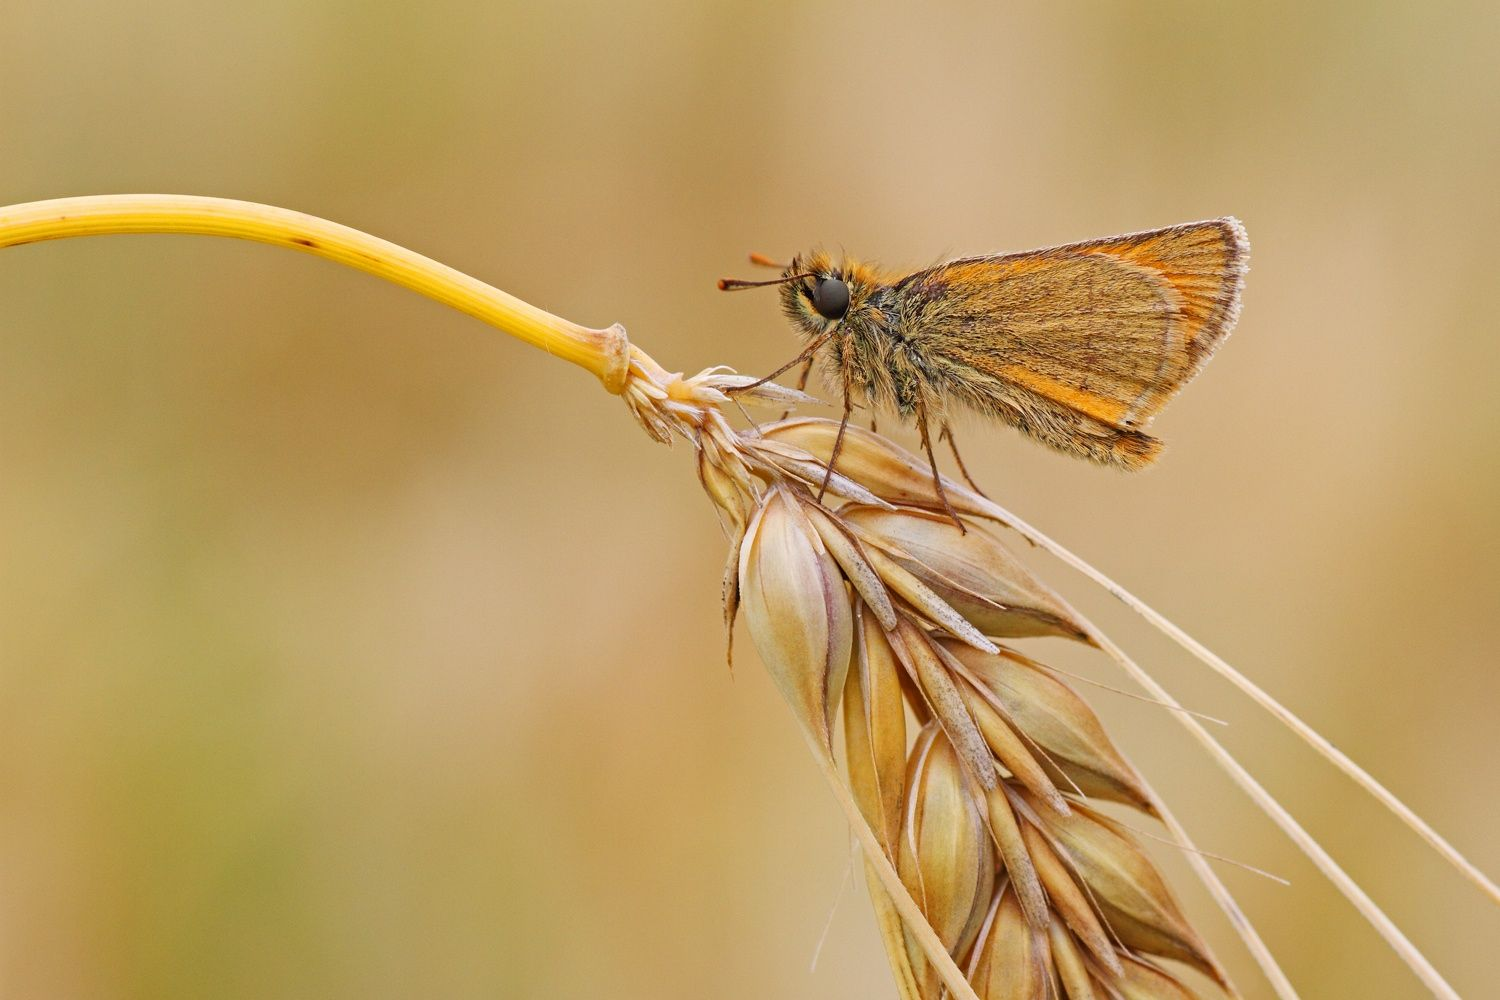 Barley Skipper by Simon Roy on 500px